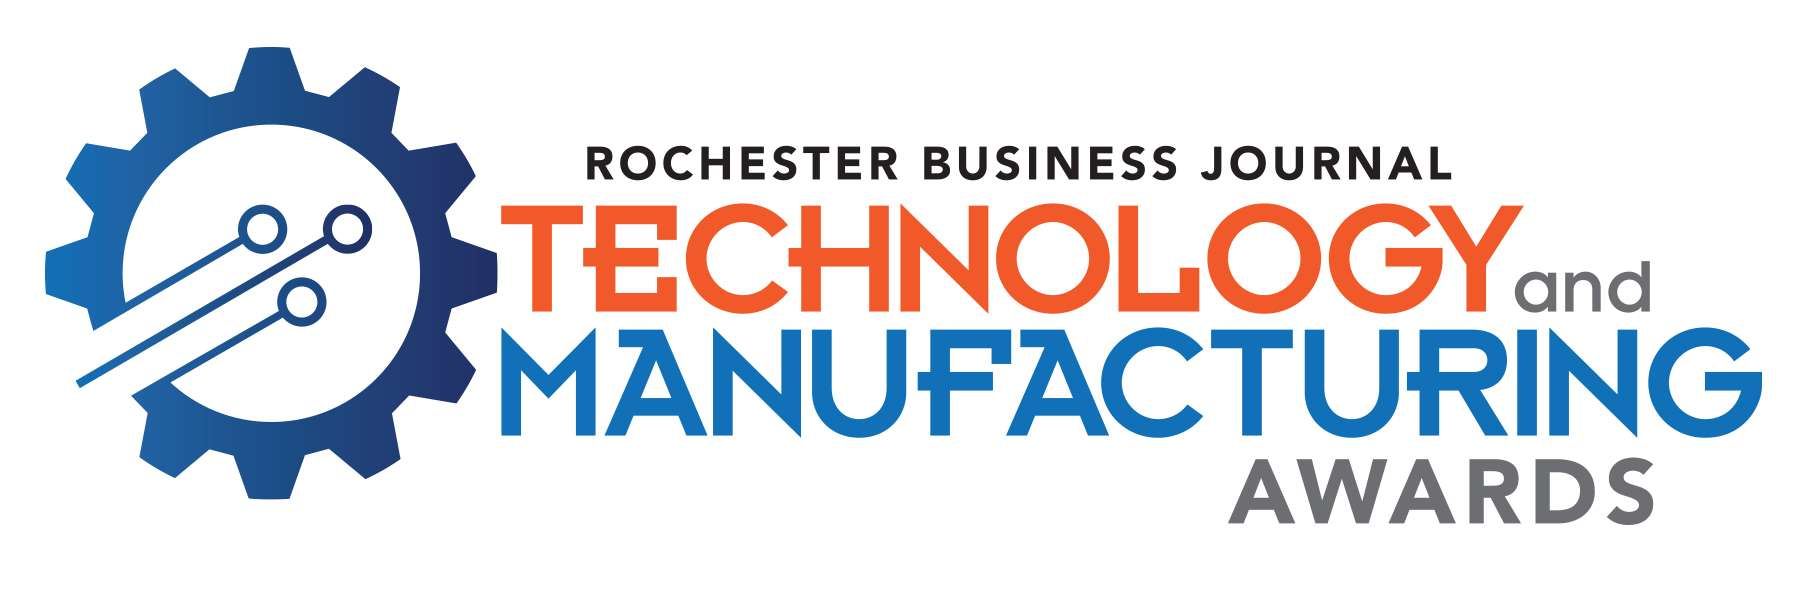 Poseidon Systems Named Finalist for 2018 Technology and Manufacturing Awards